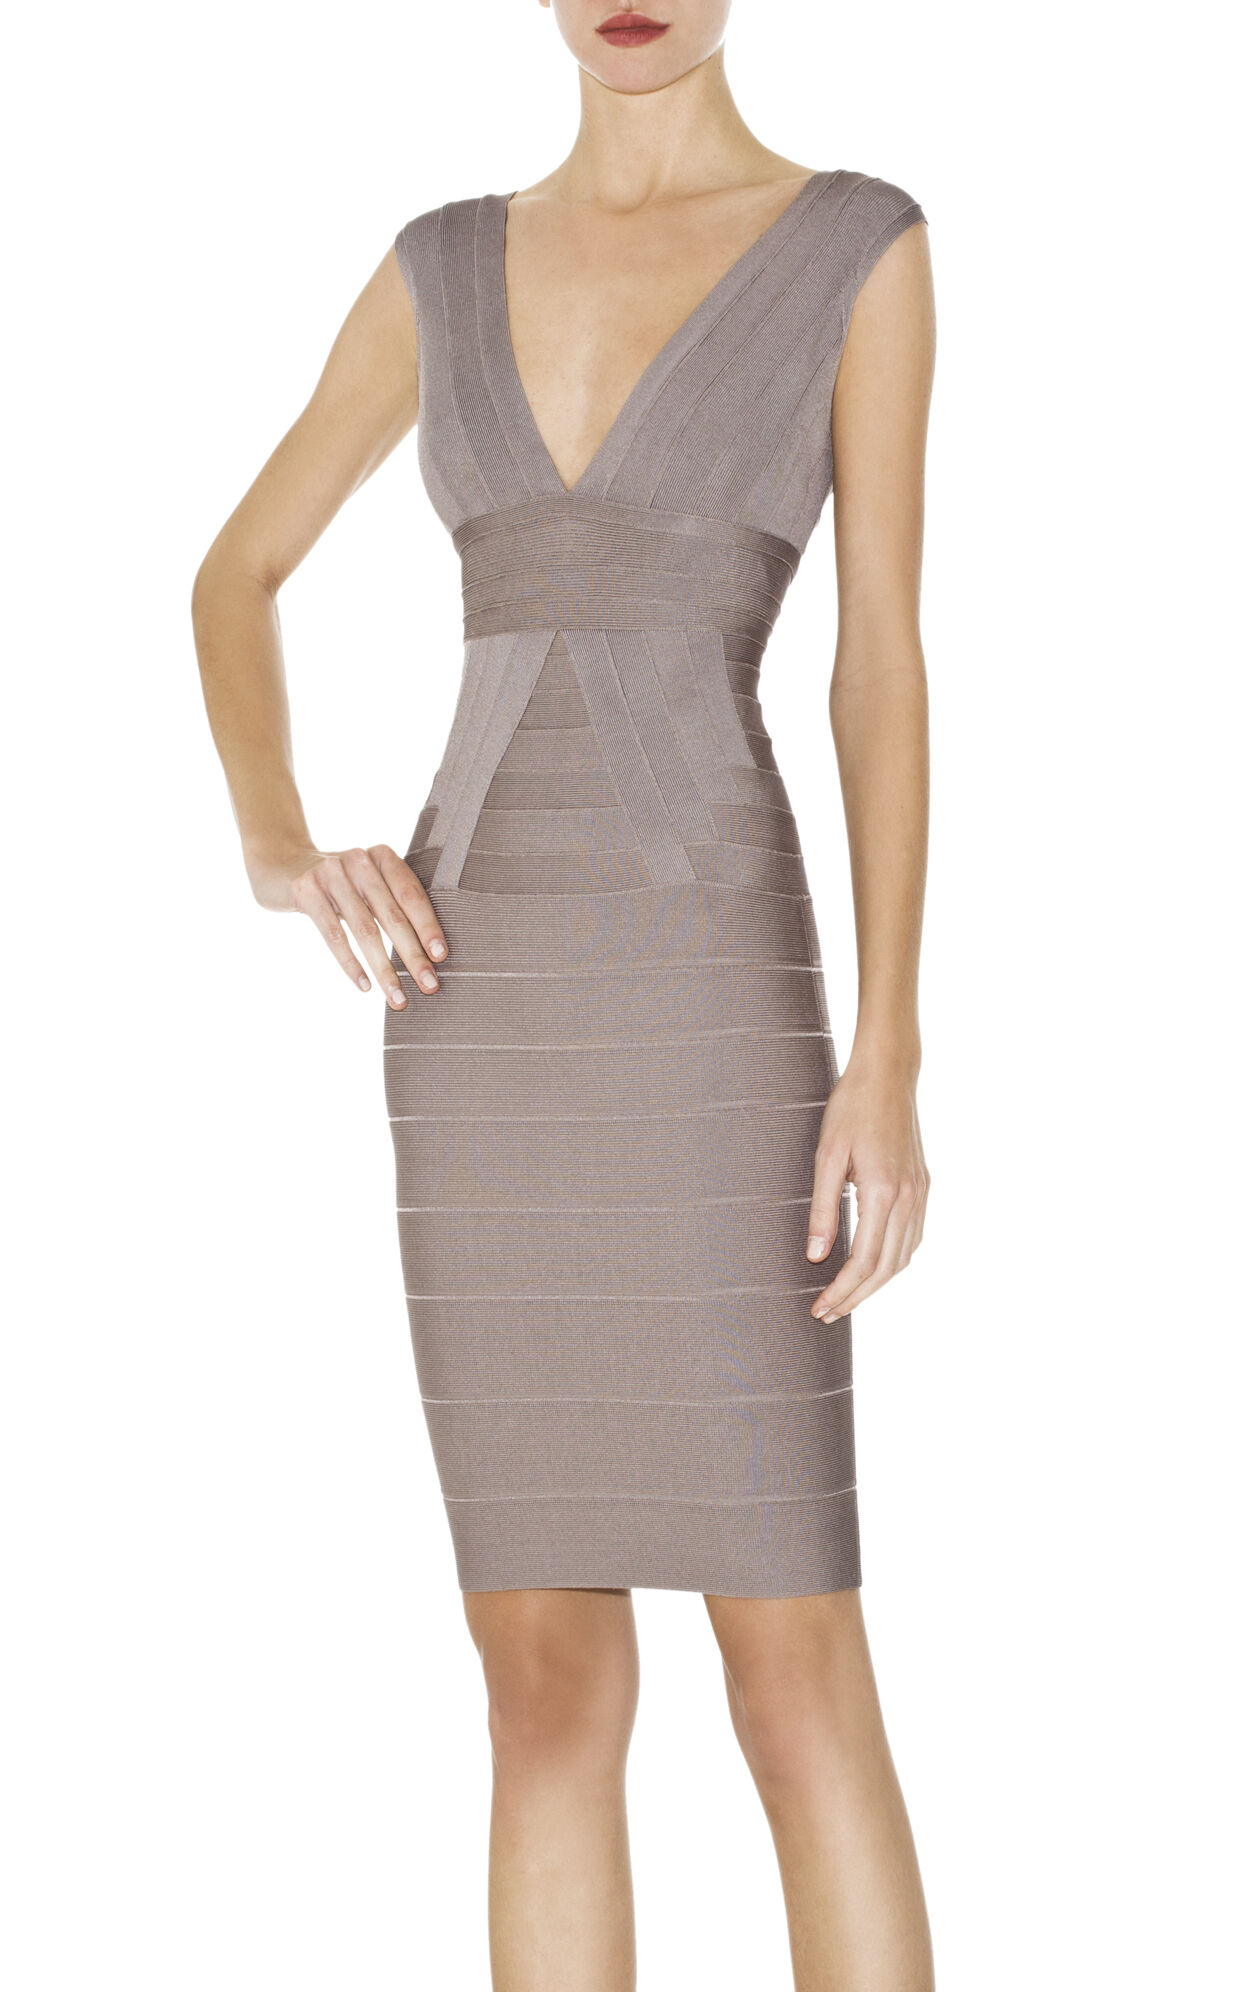 MARTINA V-NECK BANDAGE DRESS